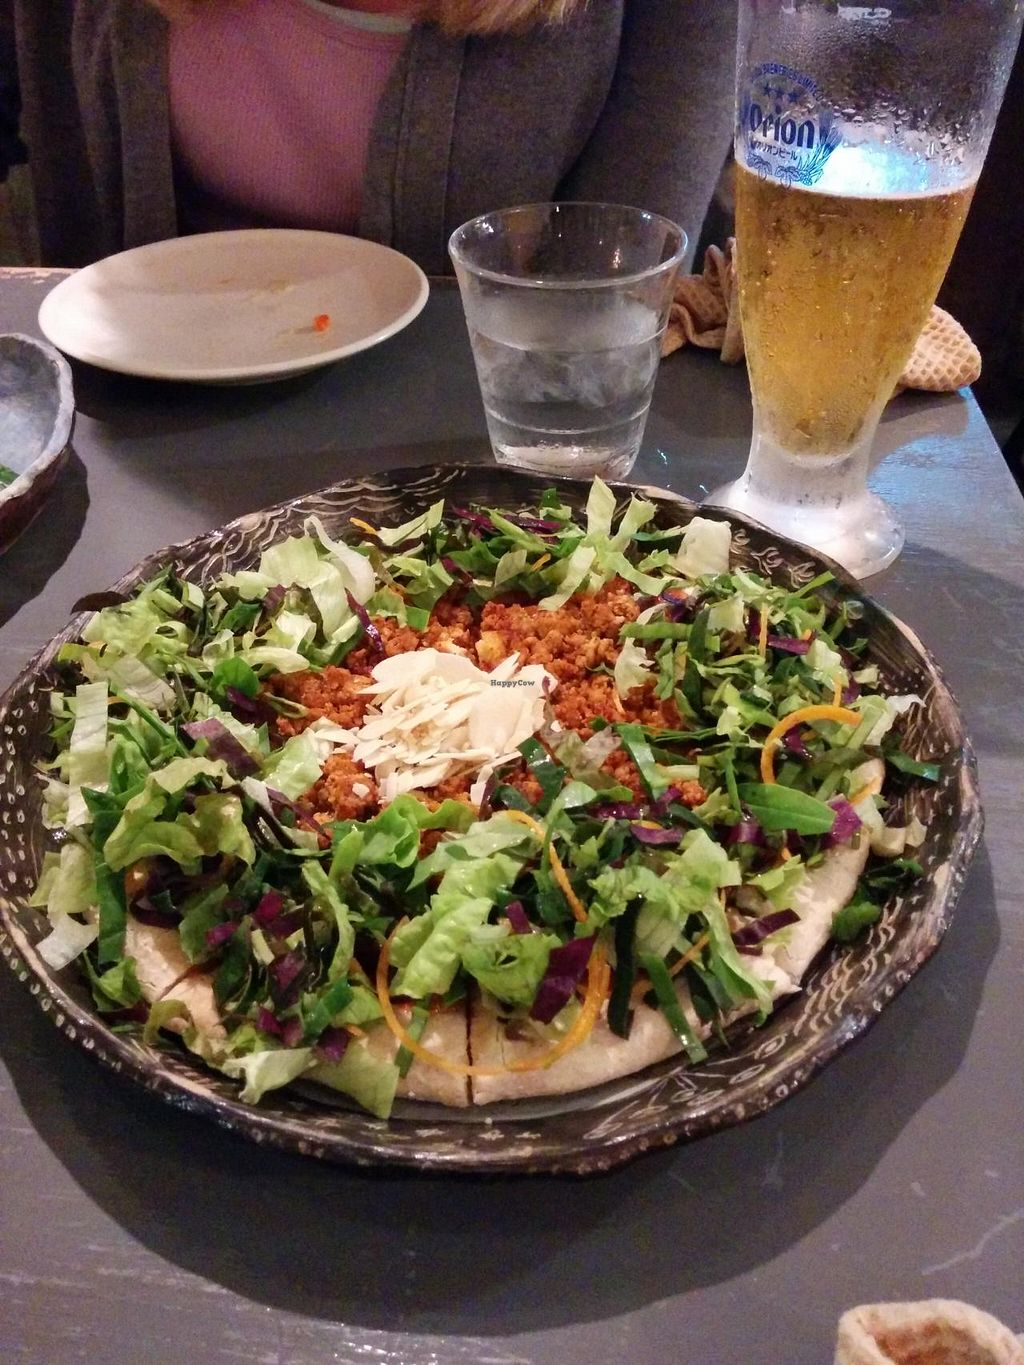 """Photo of Ukishima Garden  by <a href=""""/members/profile/kim2121"""">kim2121</a> <br/>Taco Rice Pizza at Ukishima Garden <br/> July 14, 2014  - <a href='/contact/abuse/image/36263/74038'>Report</a>"""